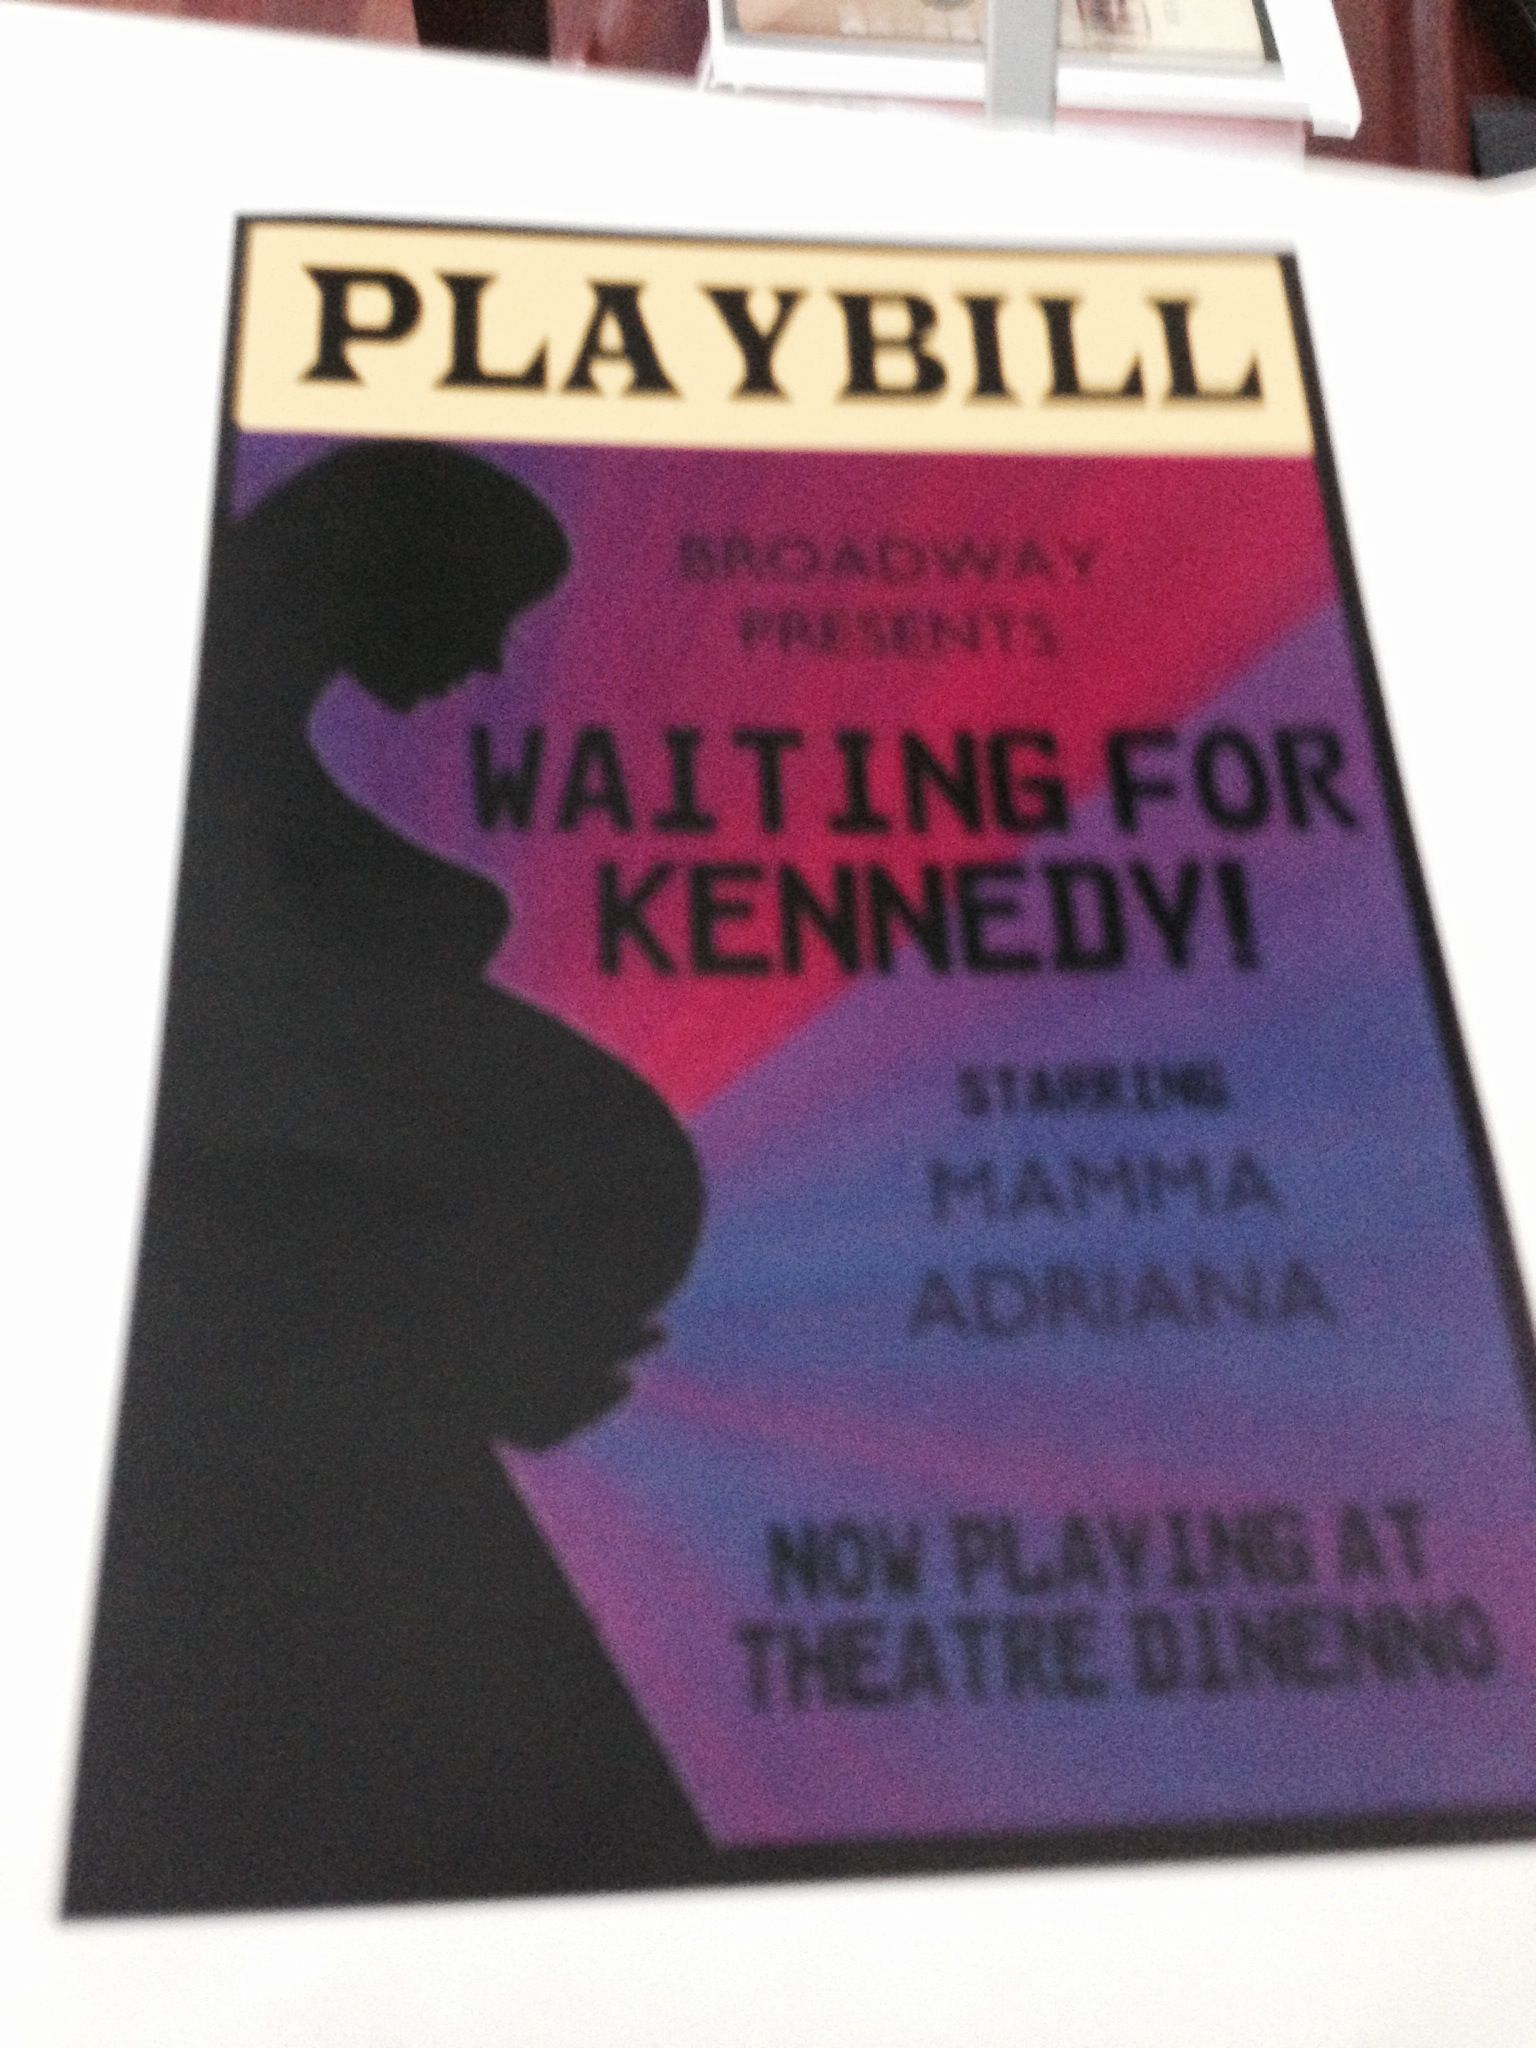 My awesome friends through me a Broadway baby shower. They came up with this awesome Playbill to hand out to guests. The inside had each Act and what would happen. Act I - Meet and Greet and the Eating. Act II - Open Presents and Photo Booth, etc! Such a clever idea! Act III - Waiting for Kennedy!